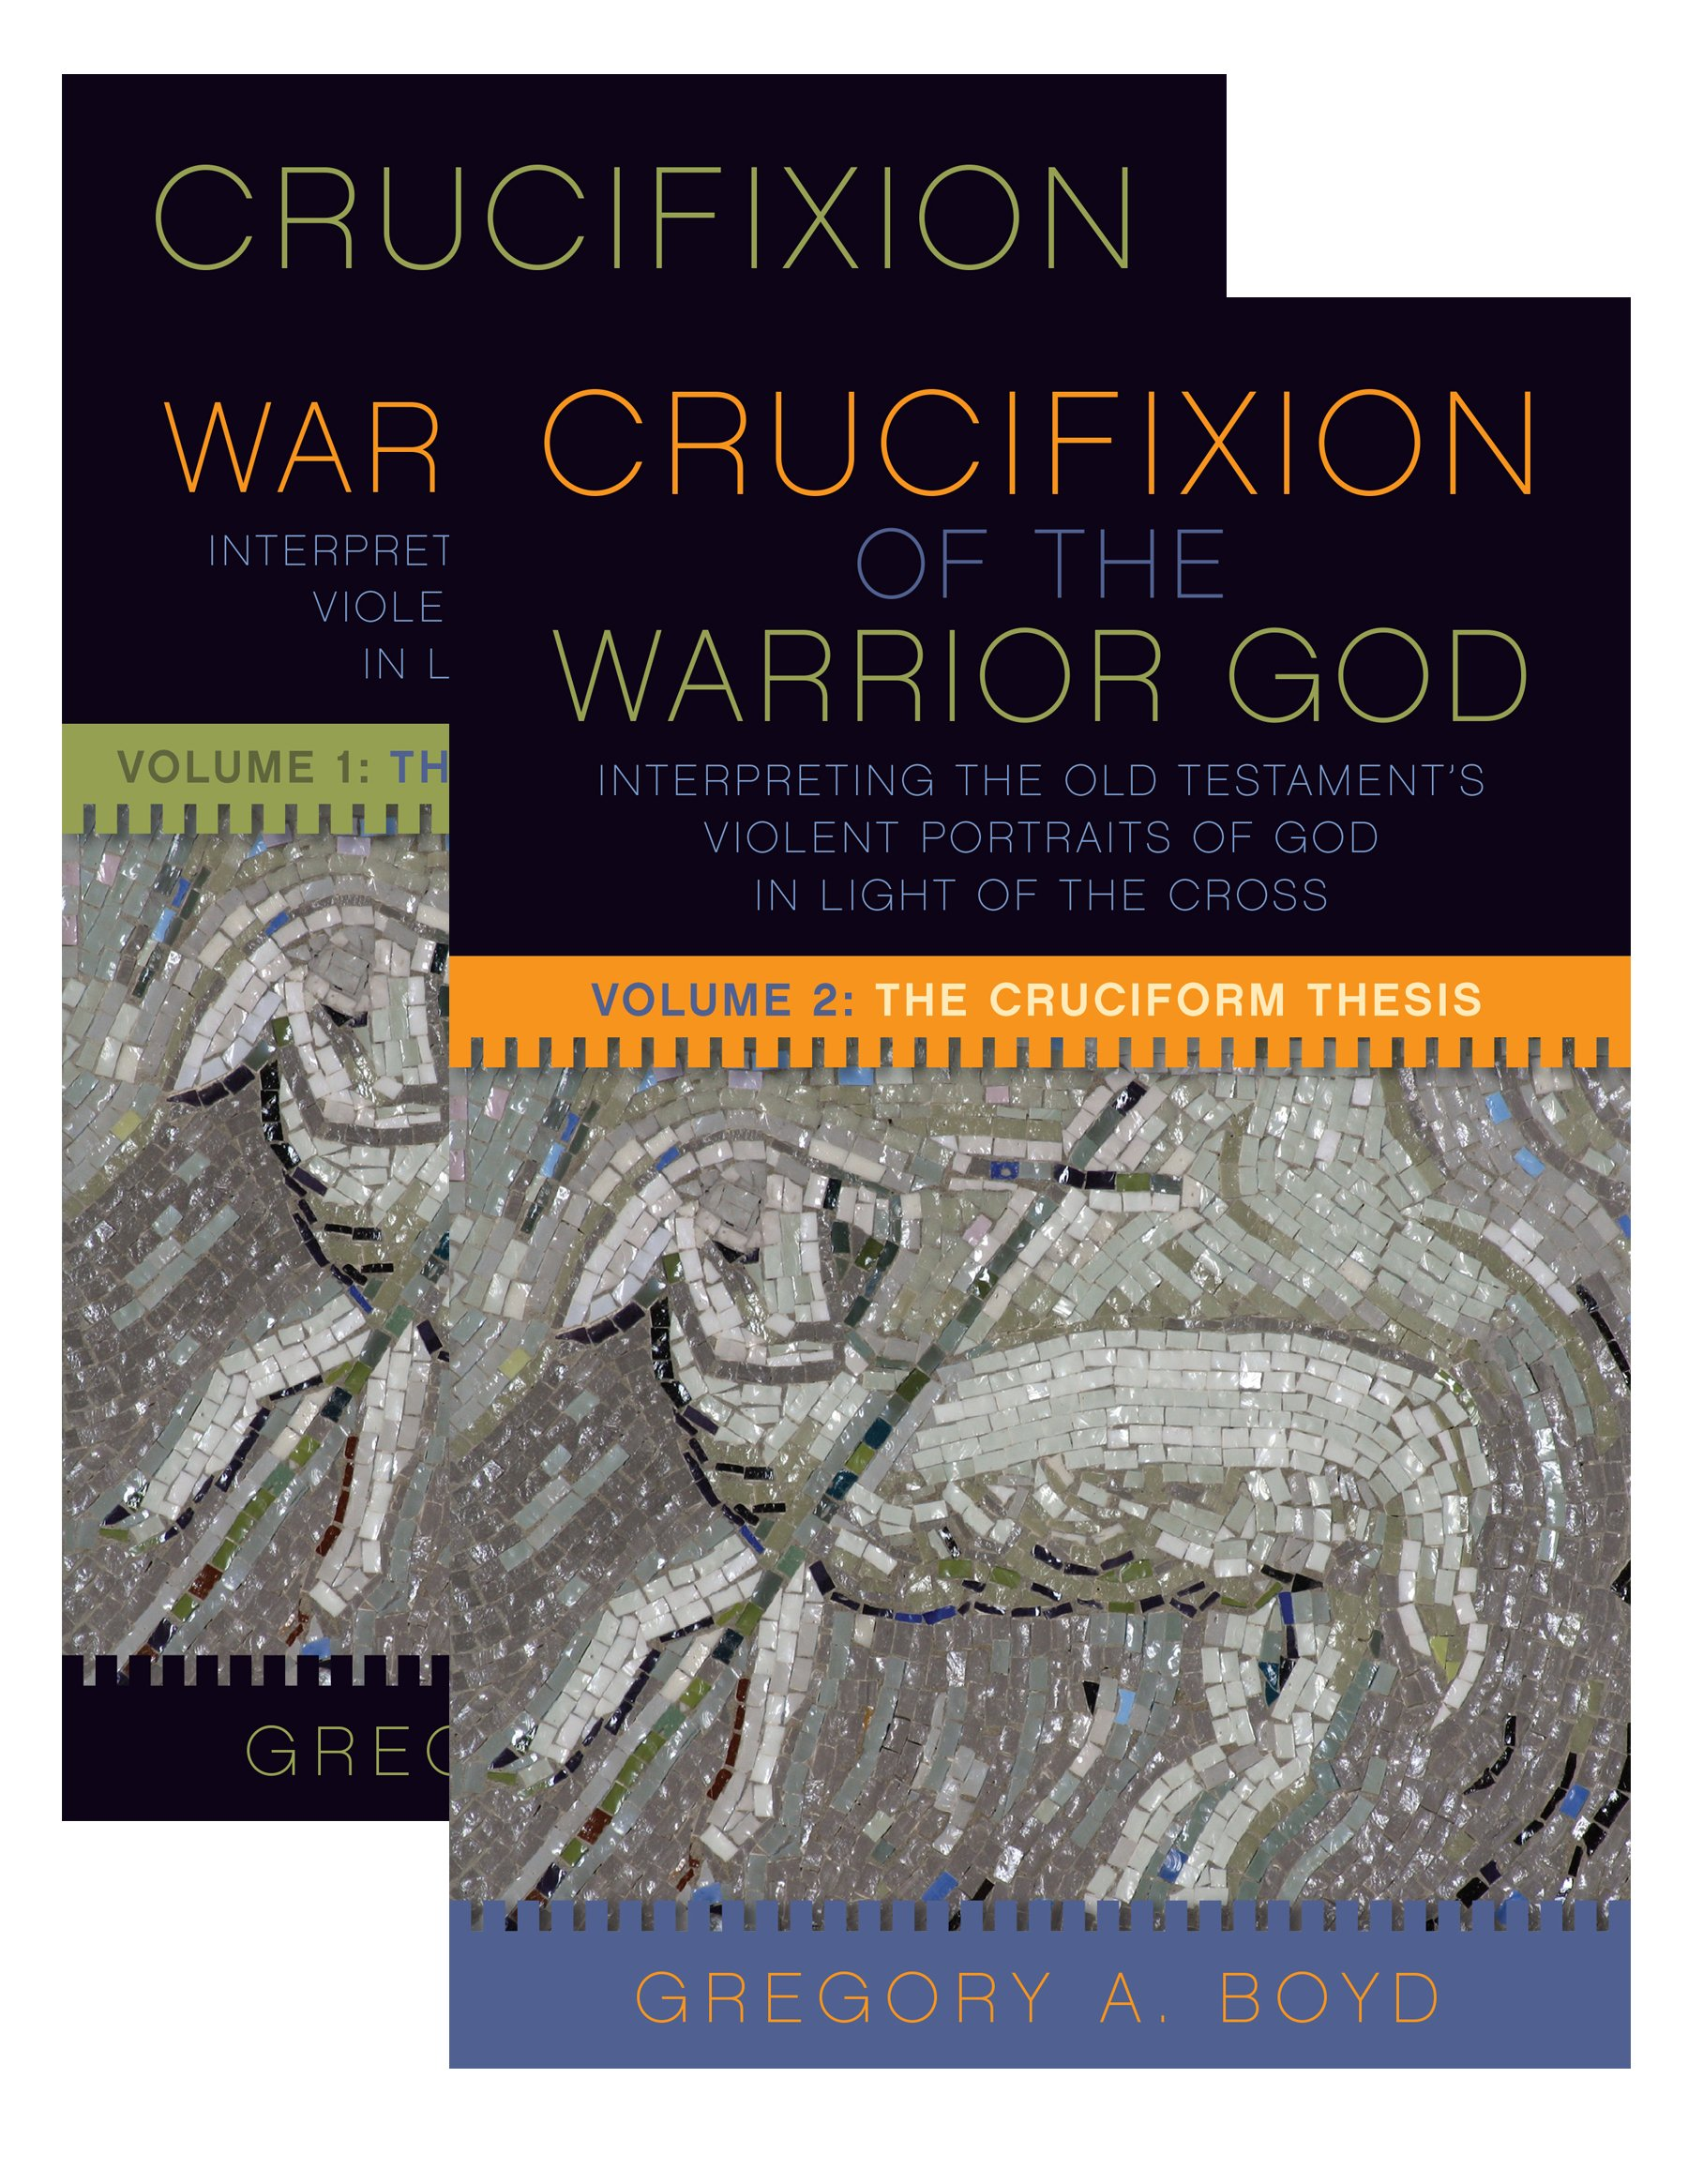 The Crucifixion Of The Warrior God Volumes 1 2 Gregory A Boyd